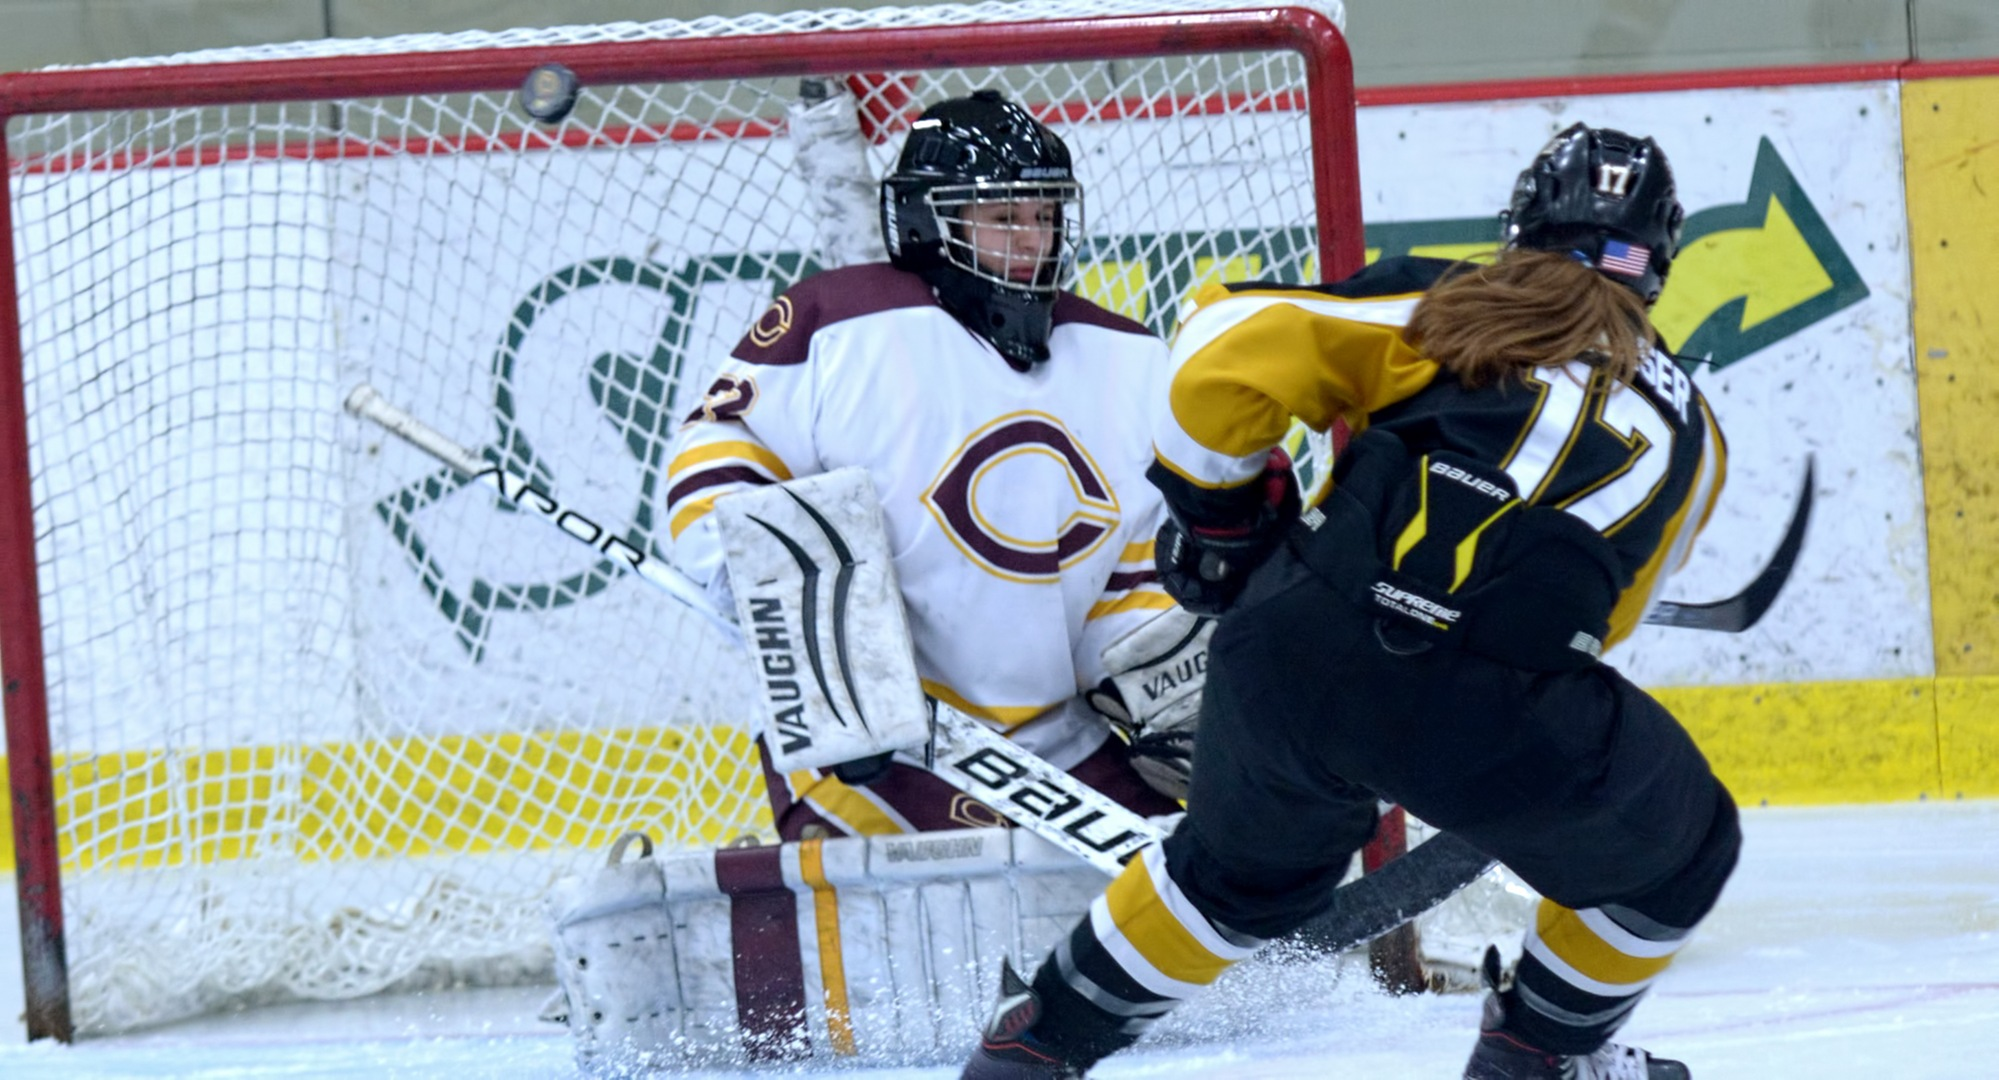 Cobber goalie Brittany Boss watches the puck deflect away from goal after making a save during the second period of the Cobbers' series finale with St. Olaf.